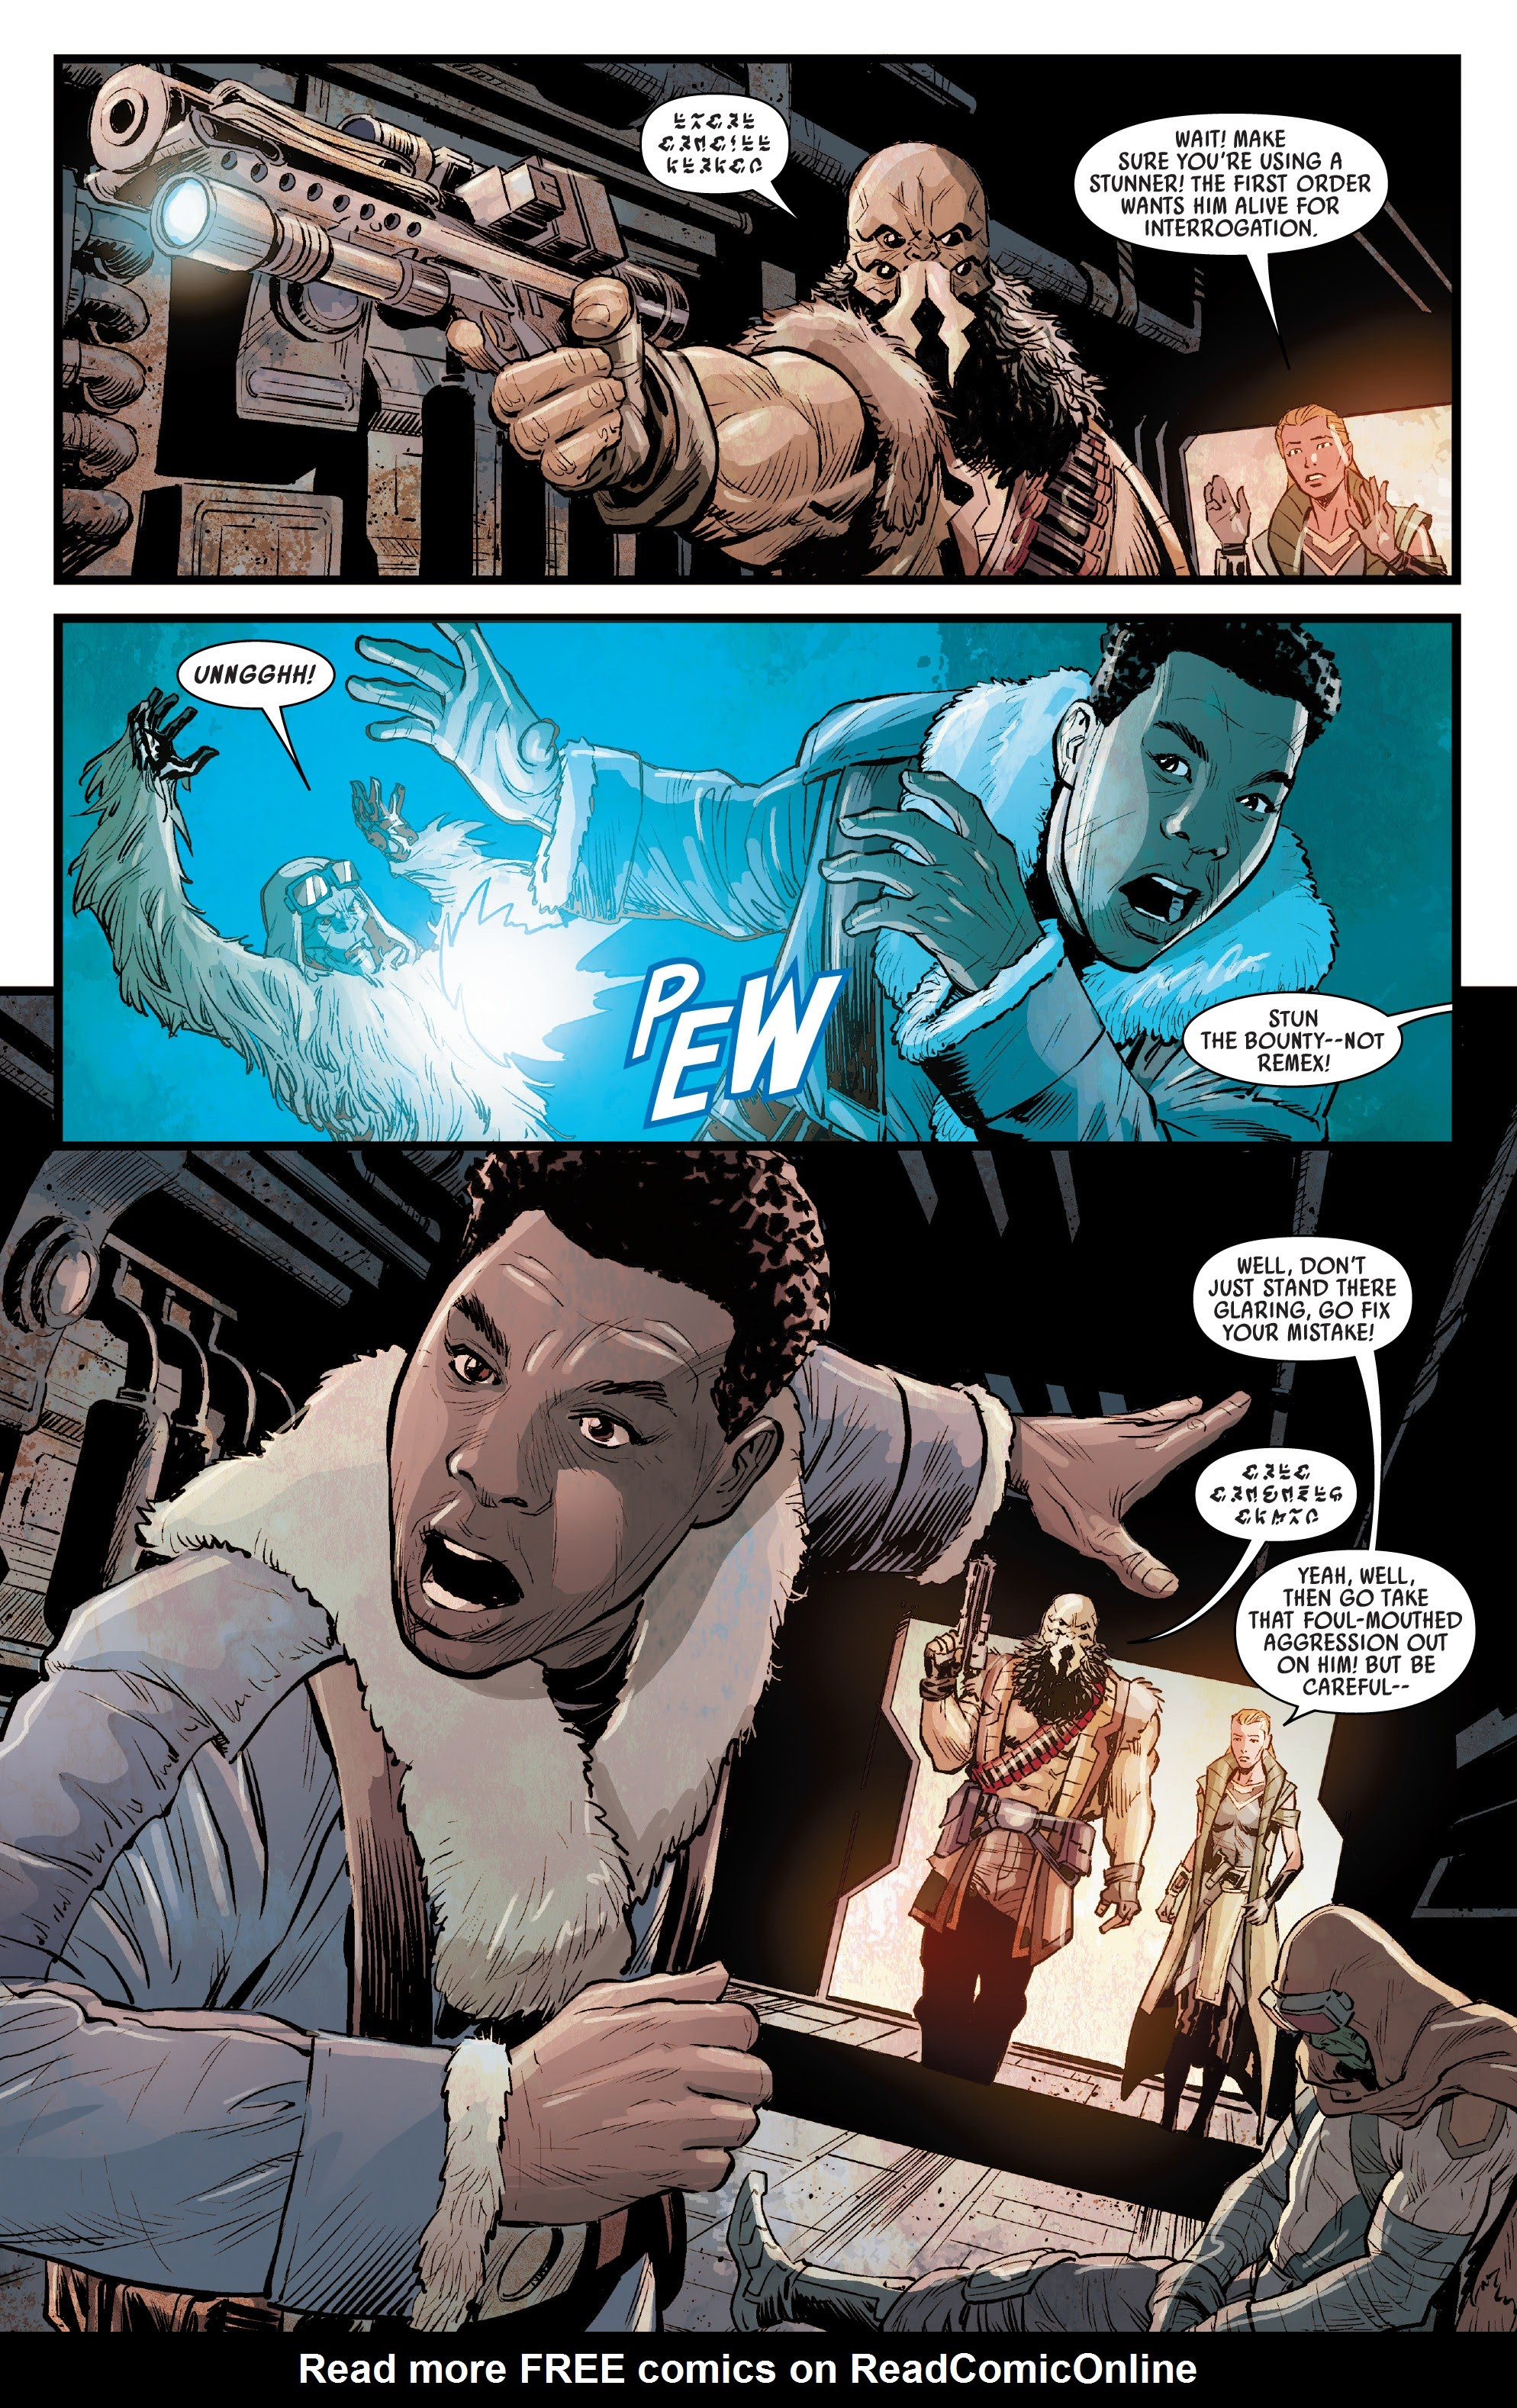 Journey To Star Wars The Rise Of Skywalker Allegiance 3 Read Journey To Star Wars The Rise Of Skywalker Allegiance Issue 3 Online Full Page